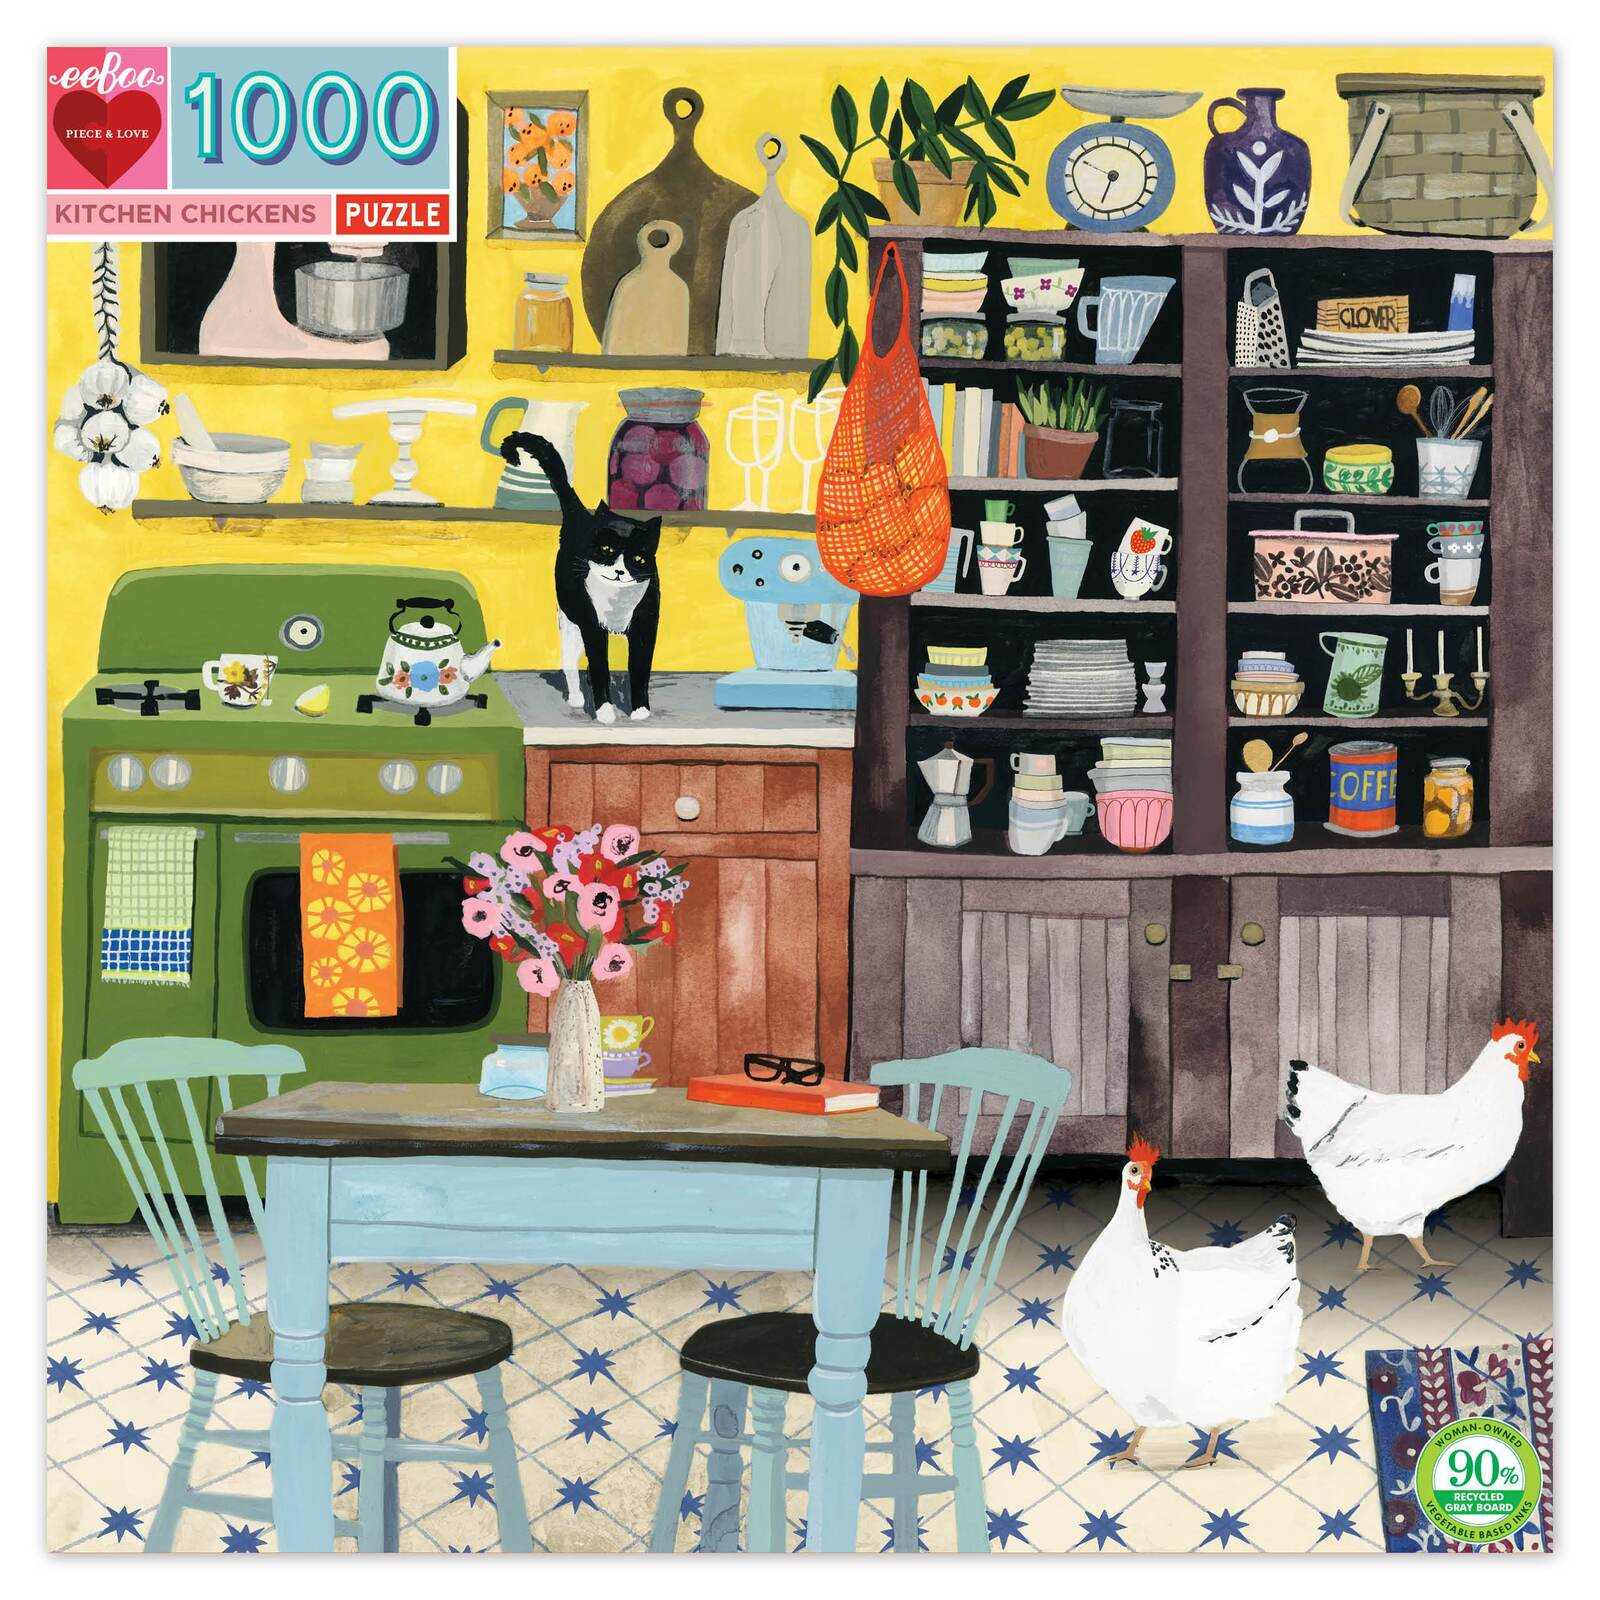 eeBoo Kitchen Chickens 1000 Piece Puzzle at Little Sprout